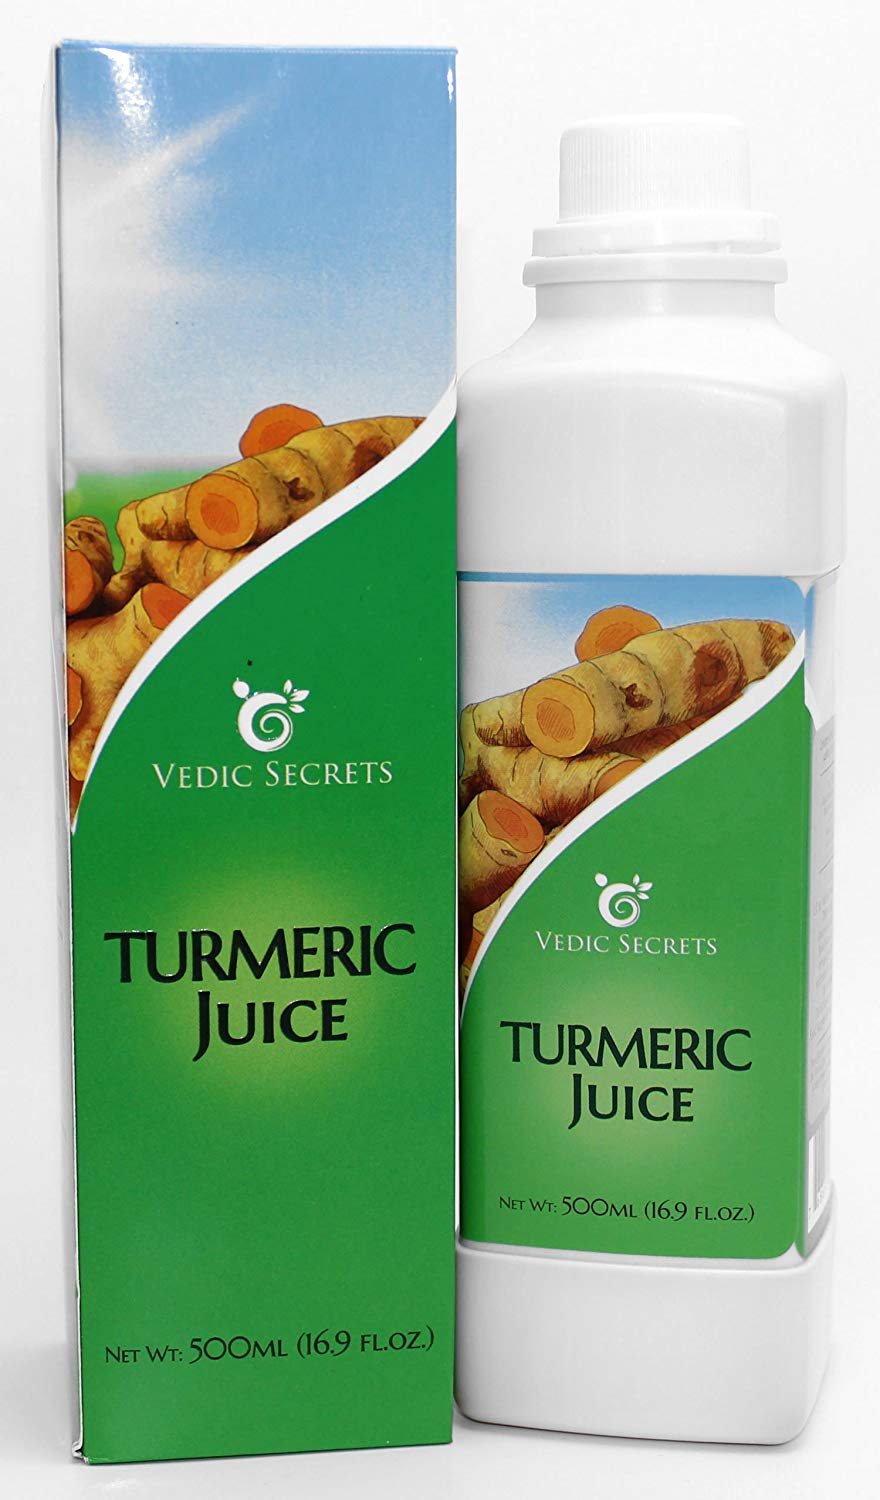 Vedic Secret Turmeric Juice